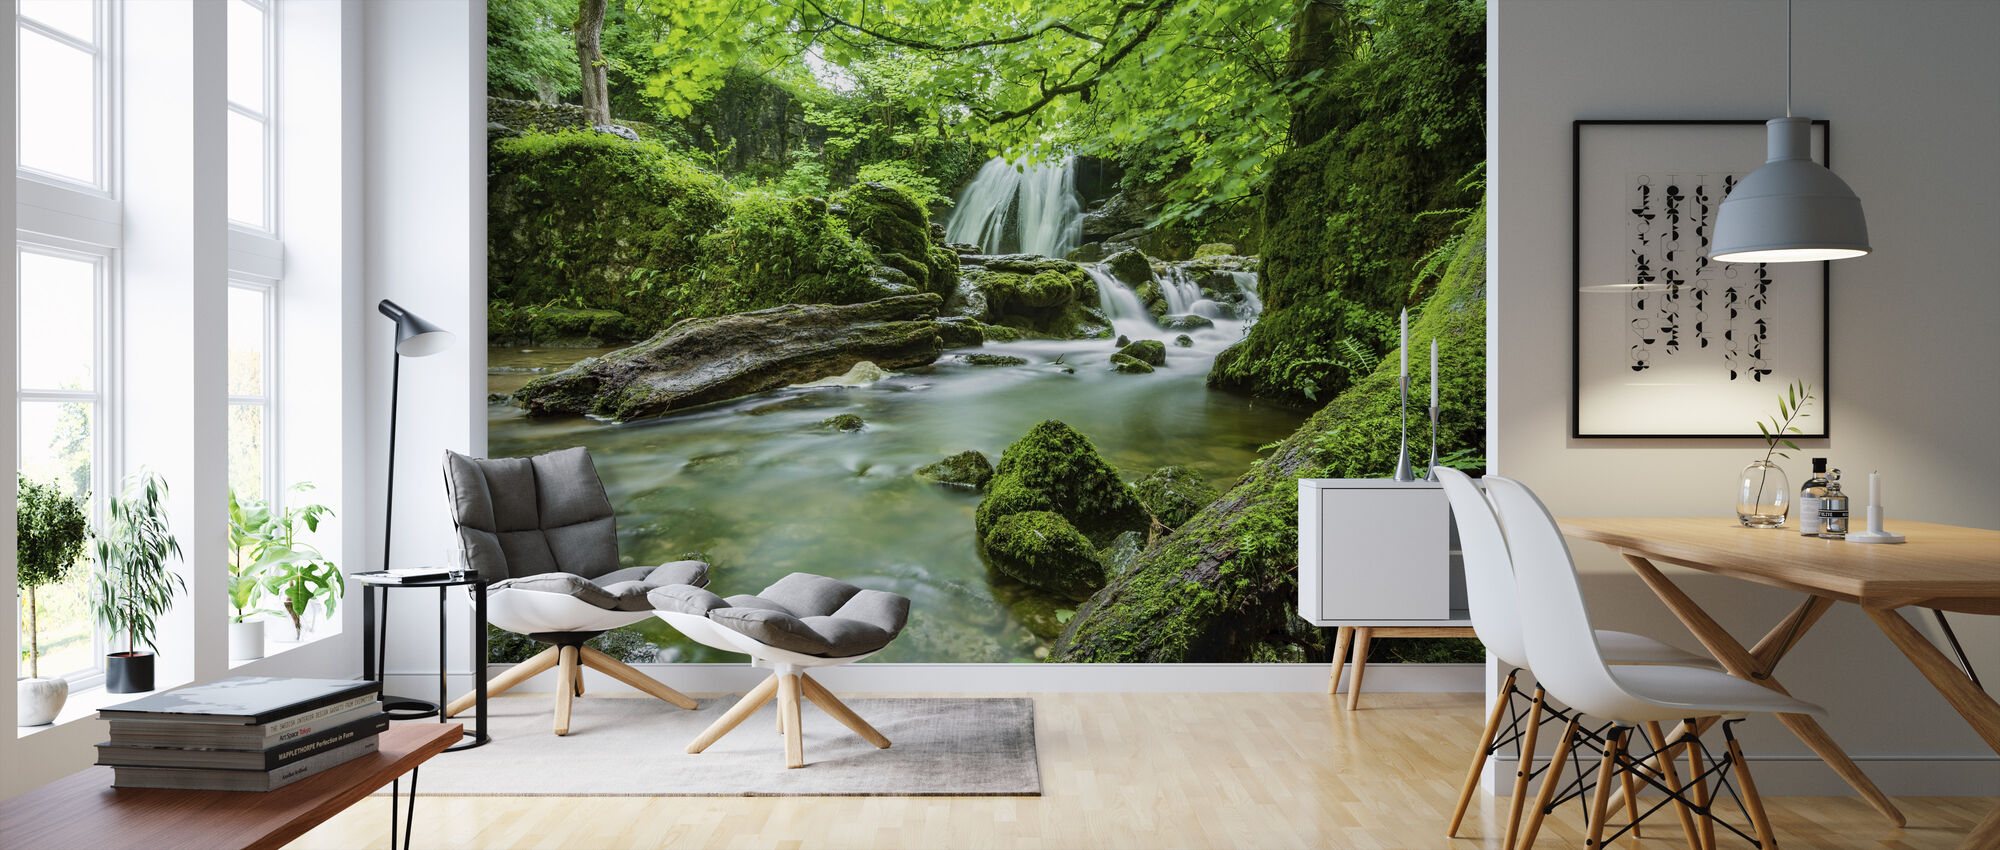 Waterfall Stream - Wallpaper - Living Room